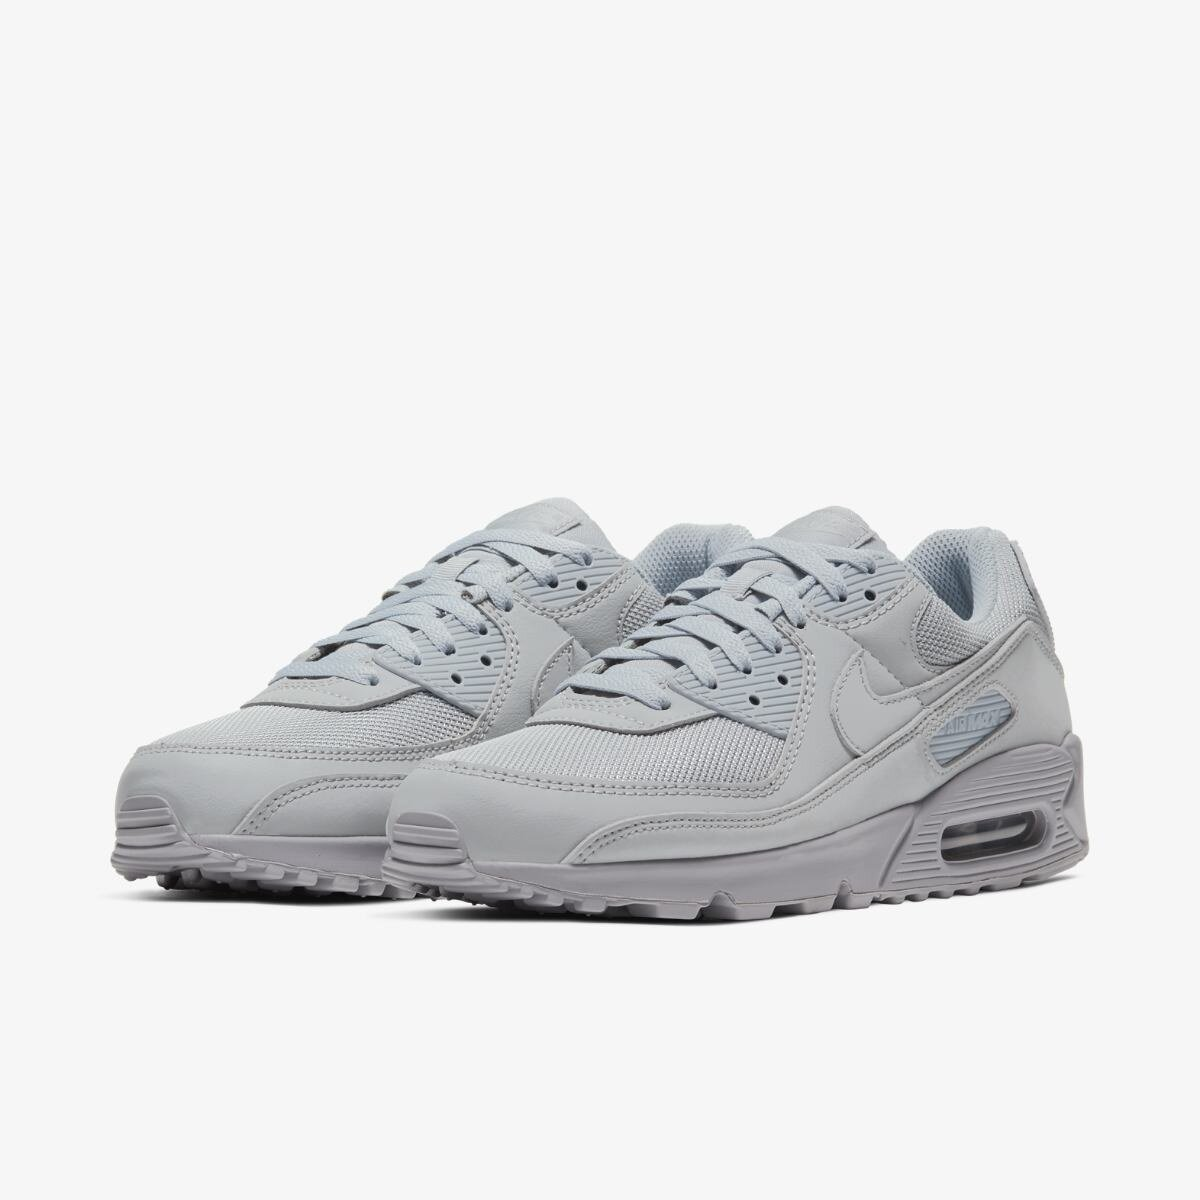 Кросівки Nike Air Max 90 Leather (CN8490-001), 40